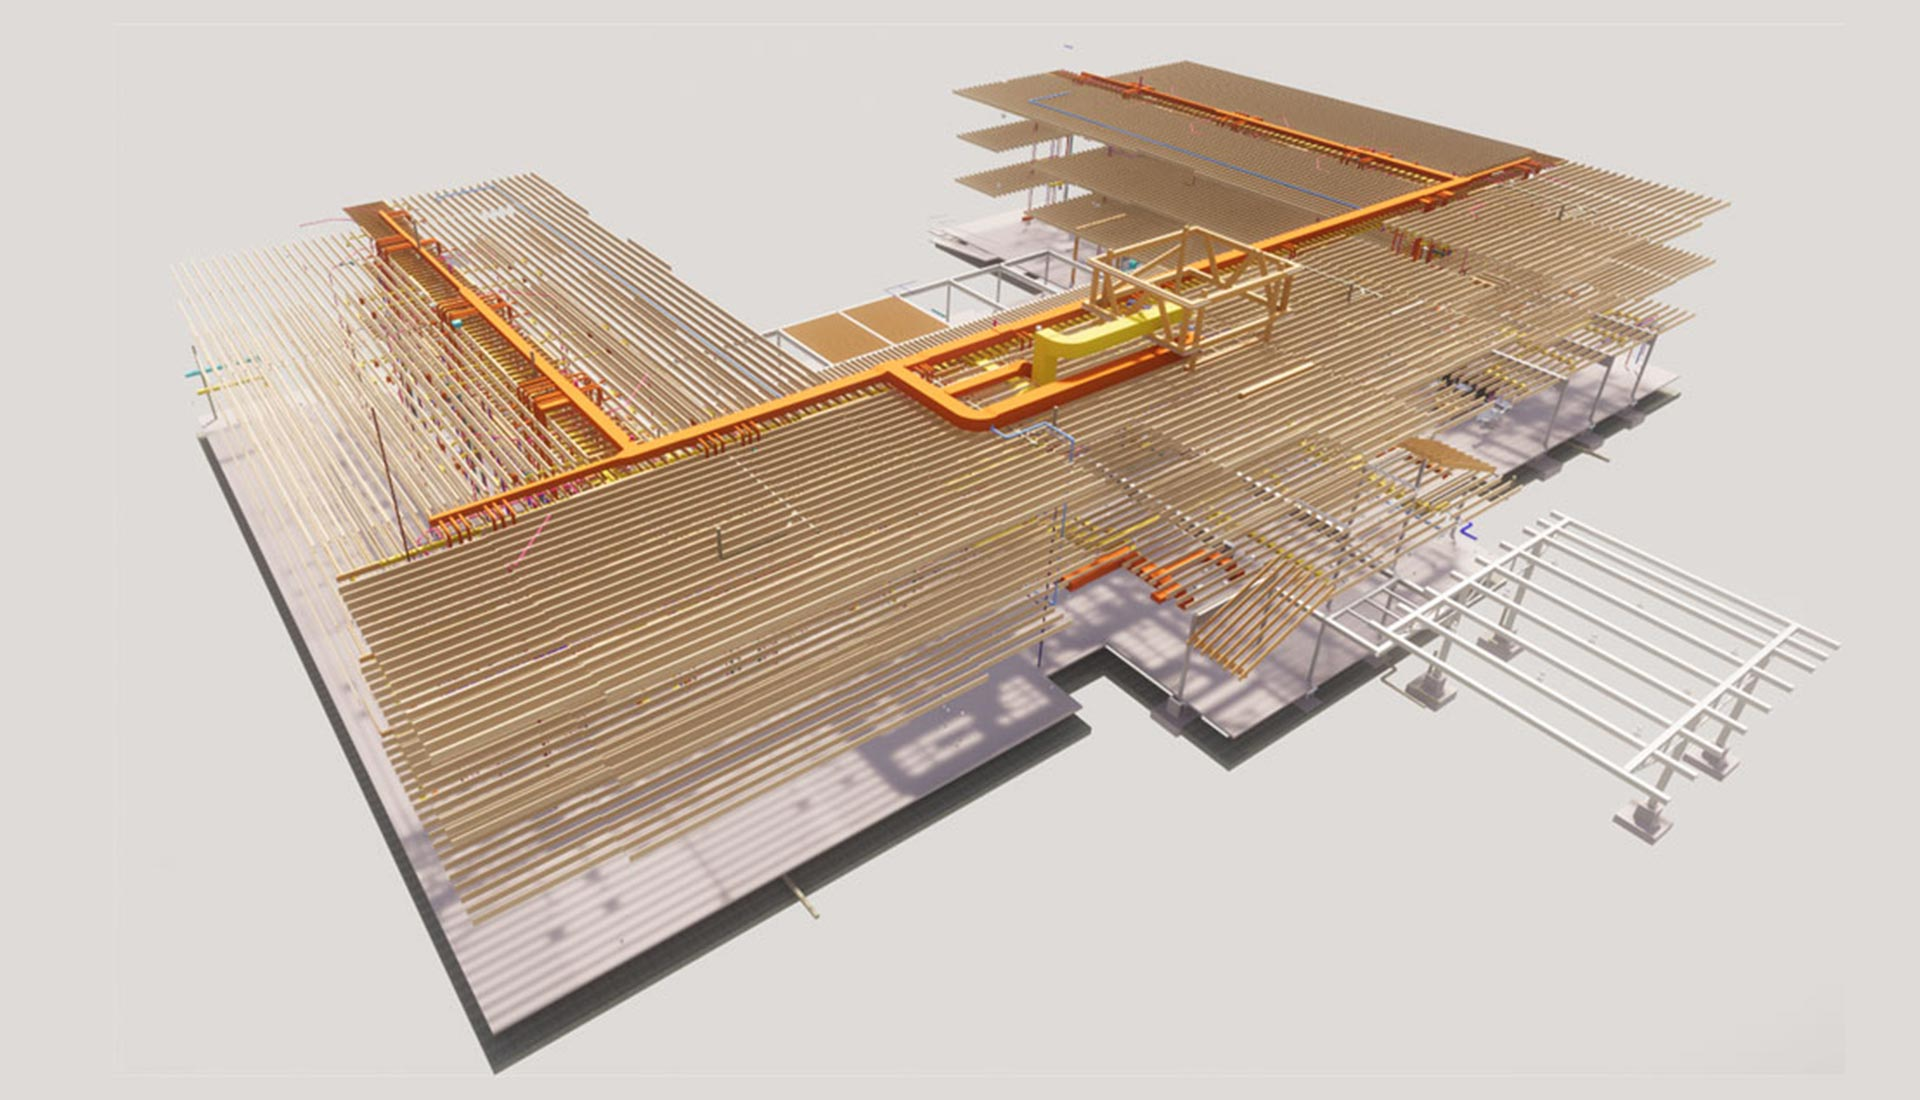 structural-model-bim-implementation-during-hotel-construction-project-title